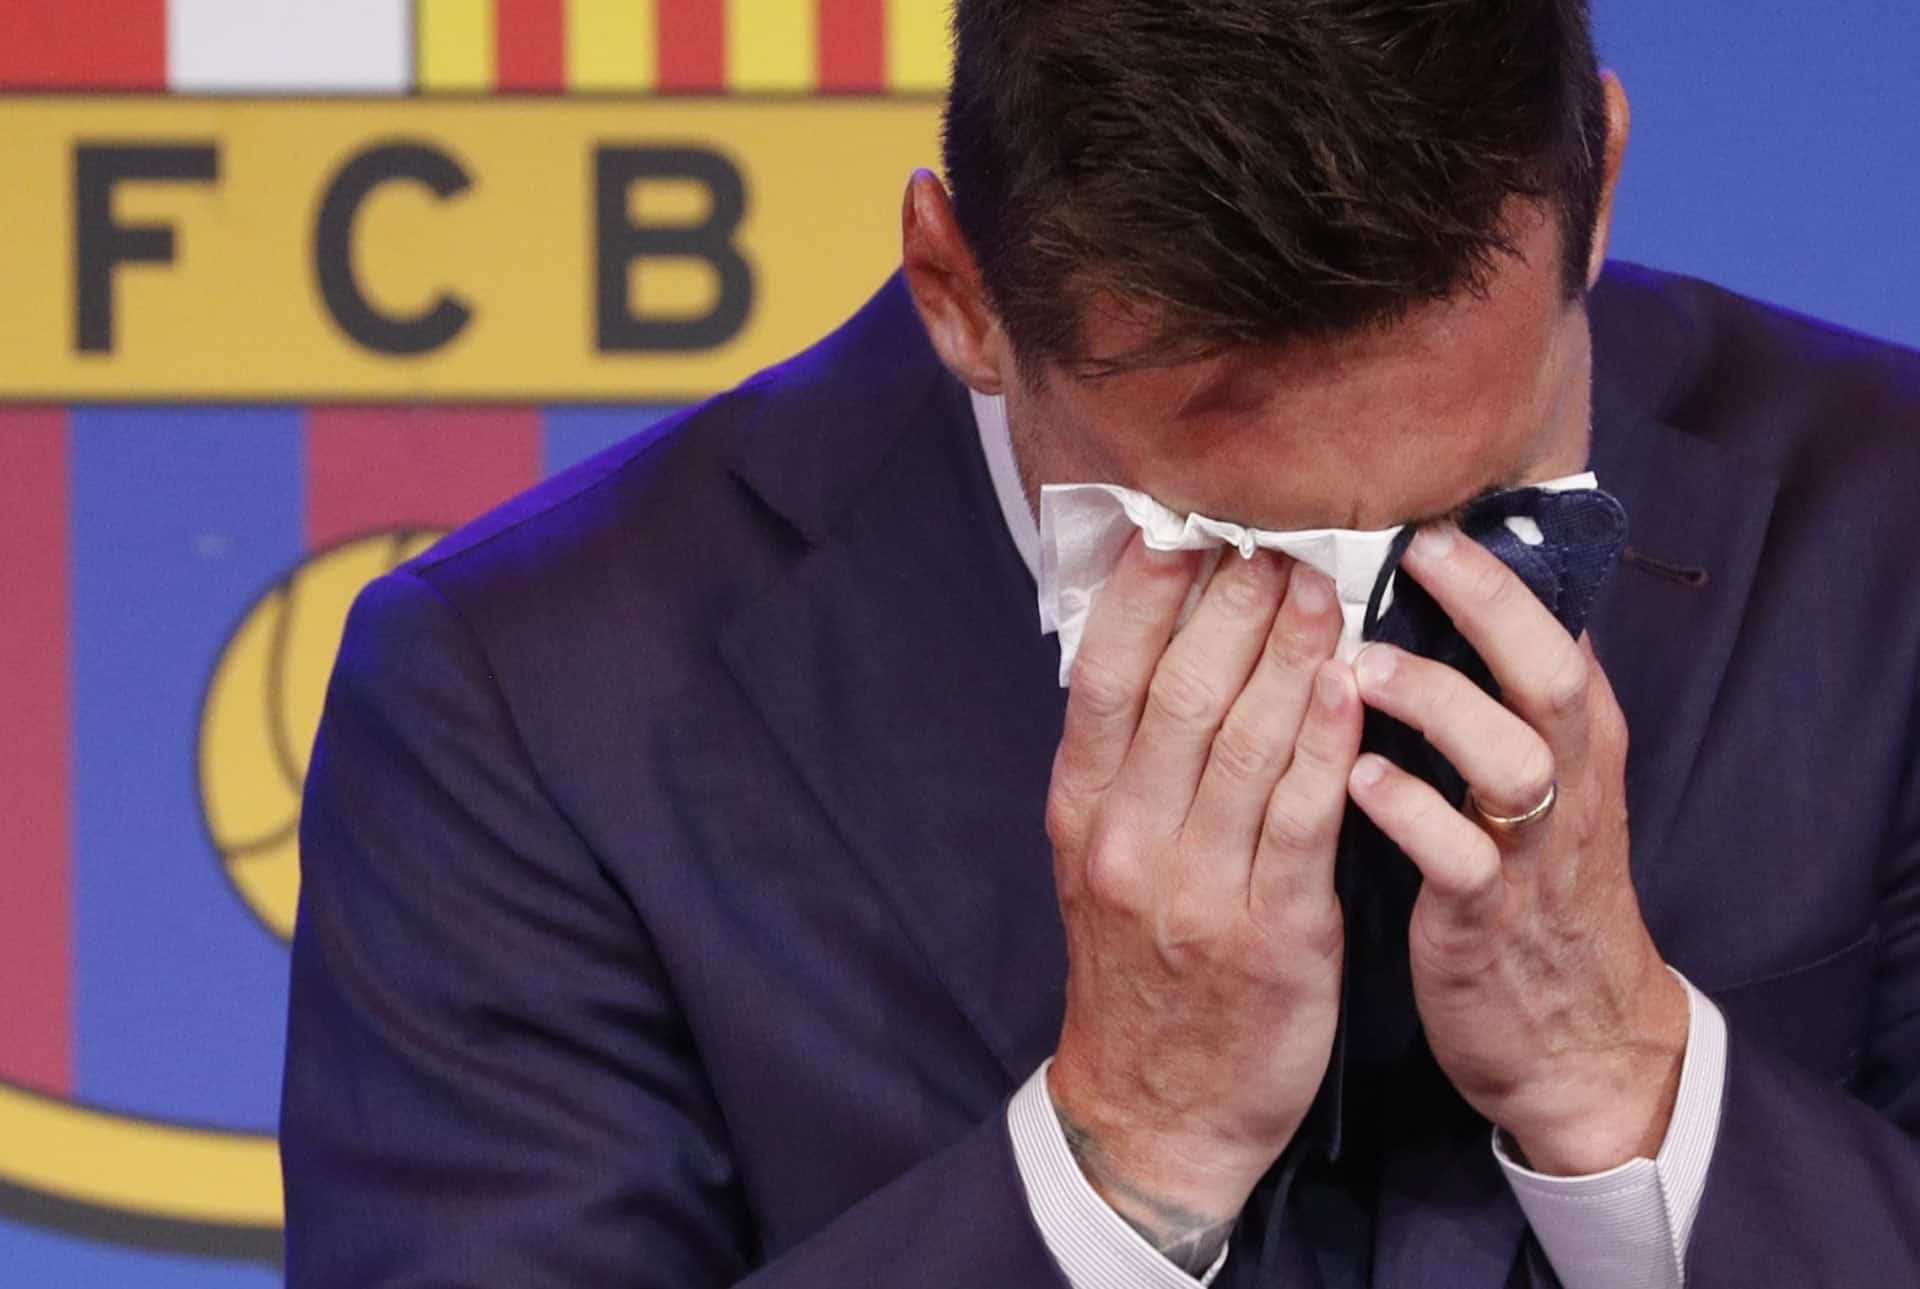 The tissue used by Messi in his farewell press conference from Barca is up for sale